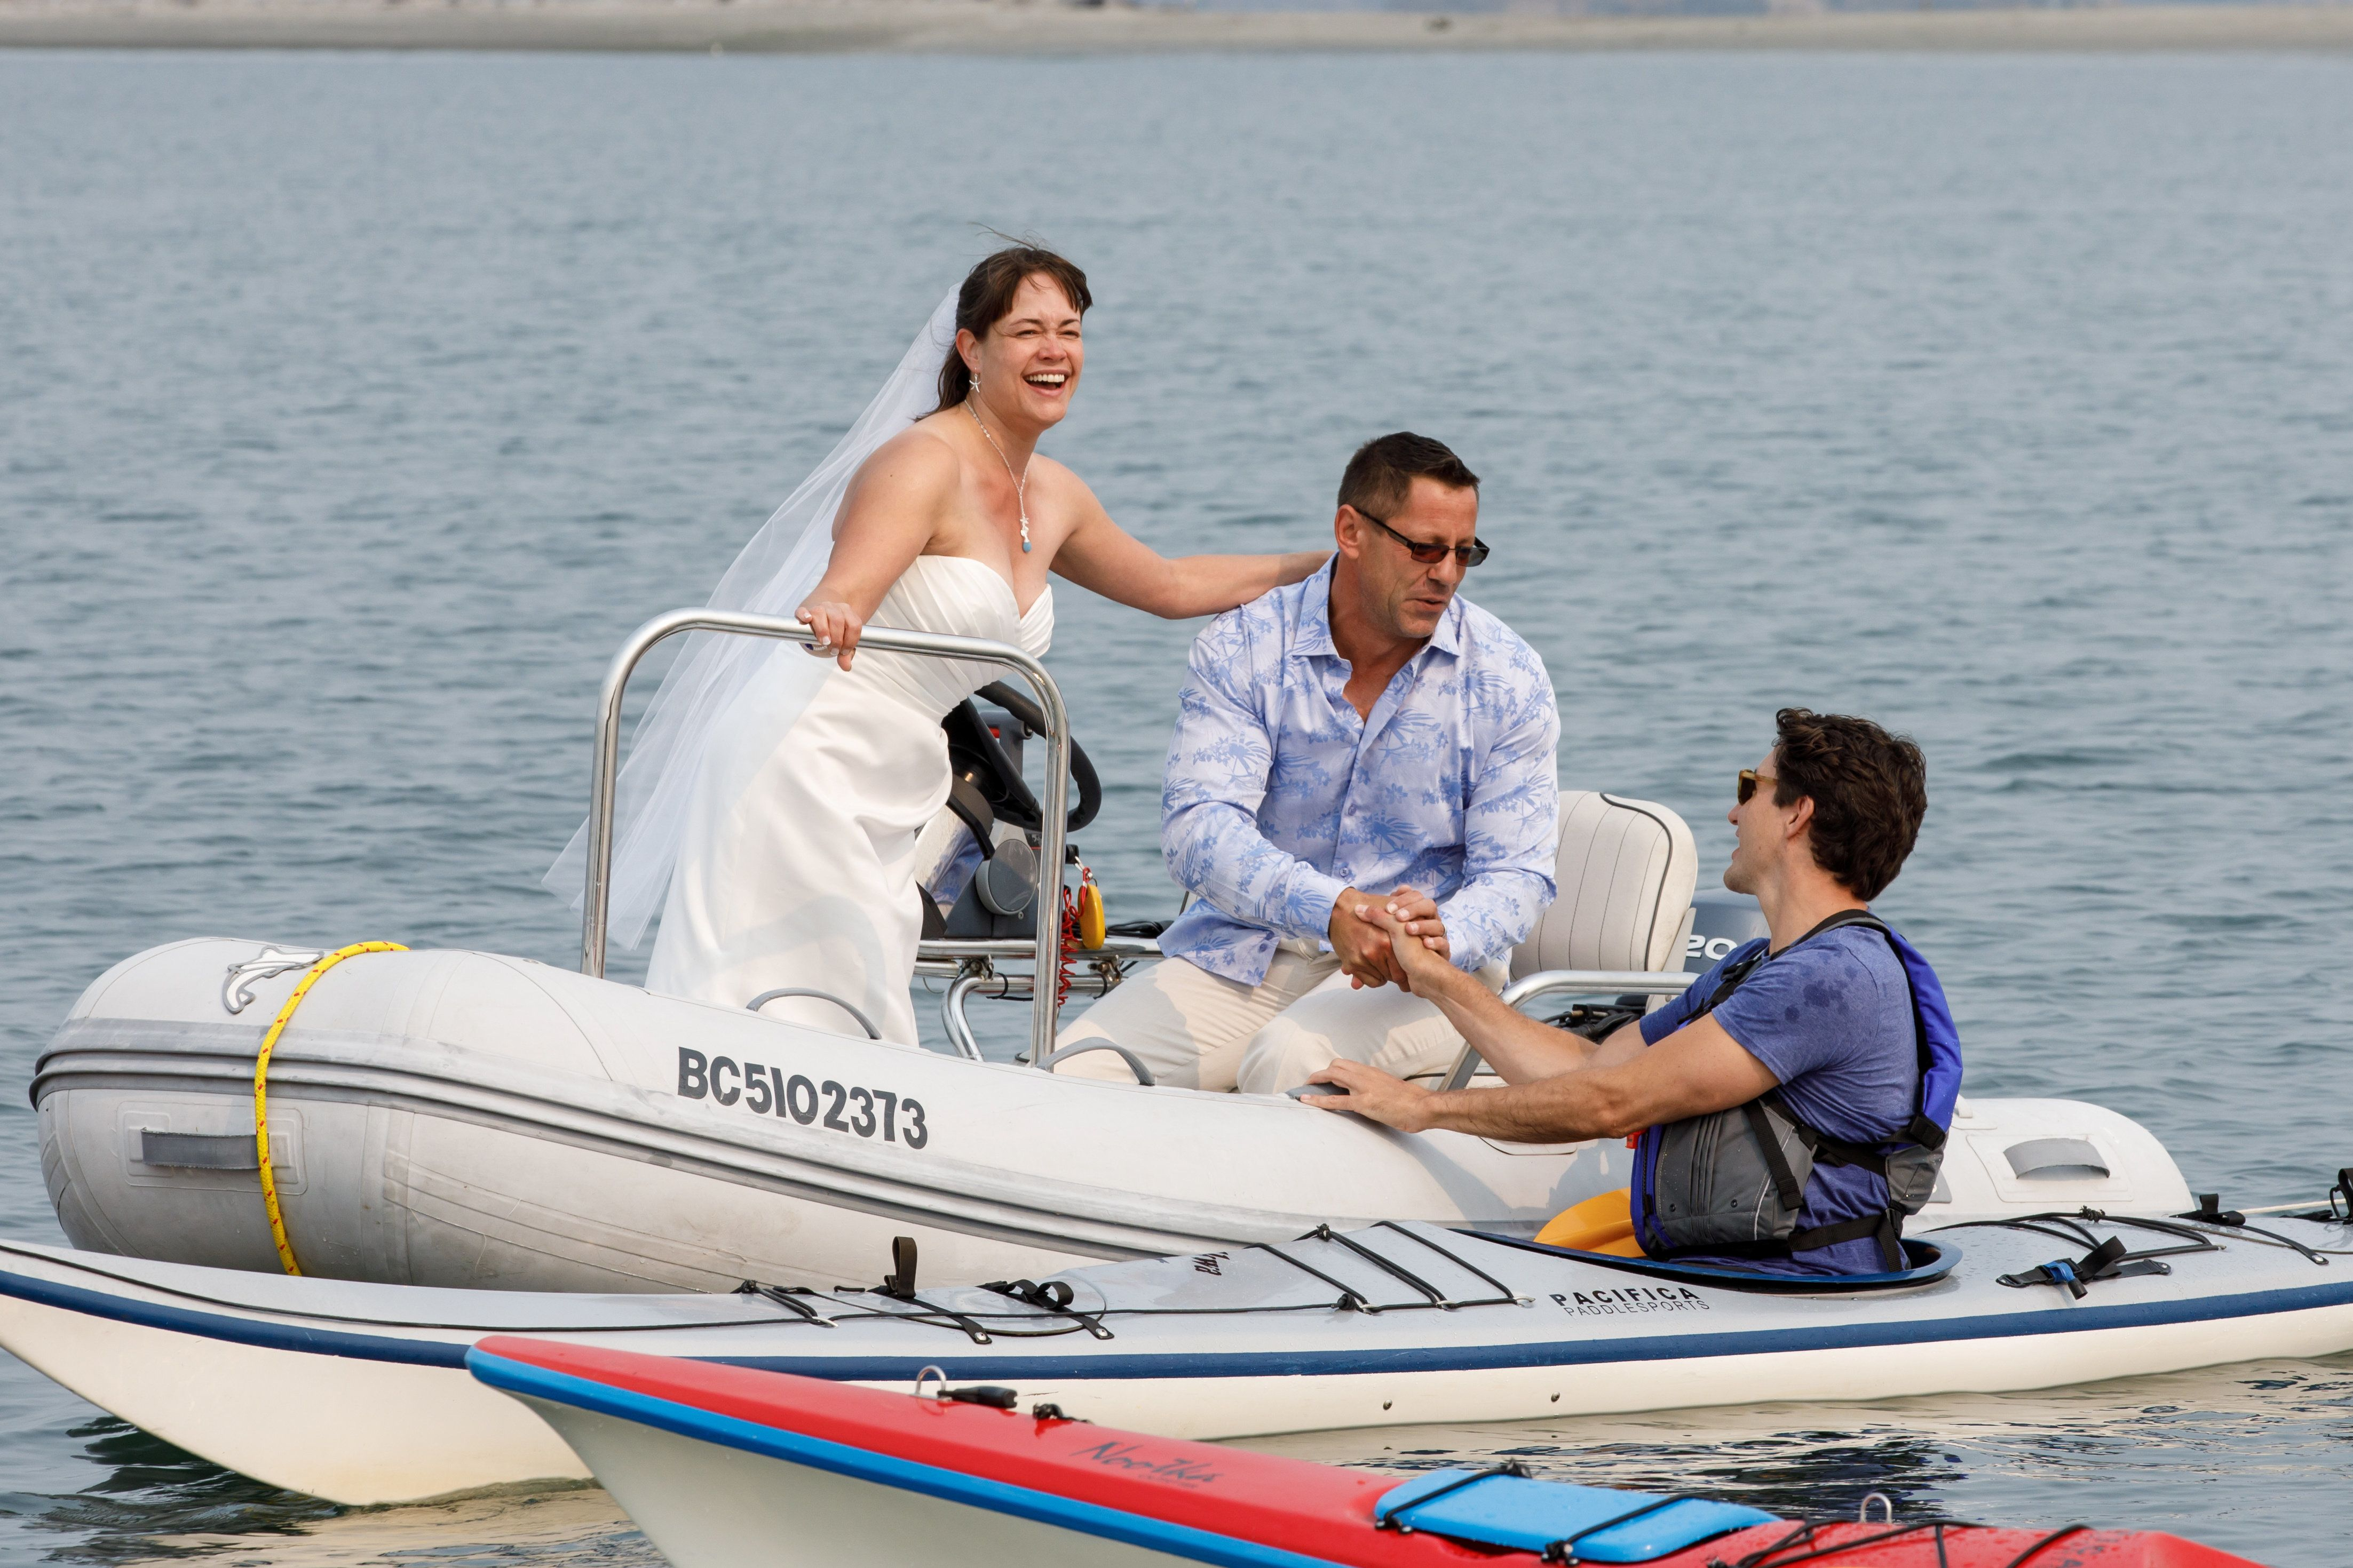 Newlyweds Michelle and Heiner Gruetzner, who were holding their wedding reception nearby, approach Canada's Prime Minister Justin Trudeau while he was kayaking off Sidney, British Columbia, Canada August 5, 2017.  Adam Scotti/Prime Minister's Office/Handout via REUTERS.  ATTENTION EDITORS - THIS IMAGE WAS PROVIDED BY A THIRD PARTY